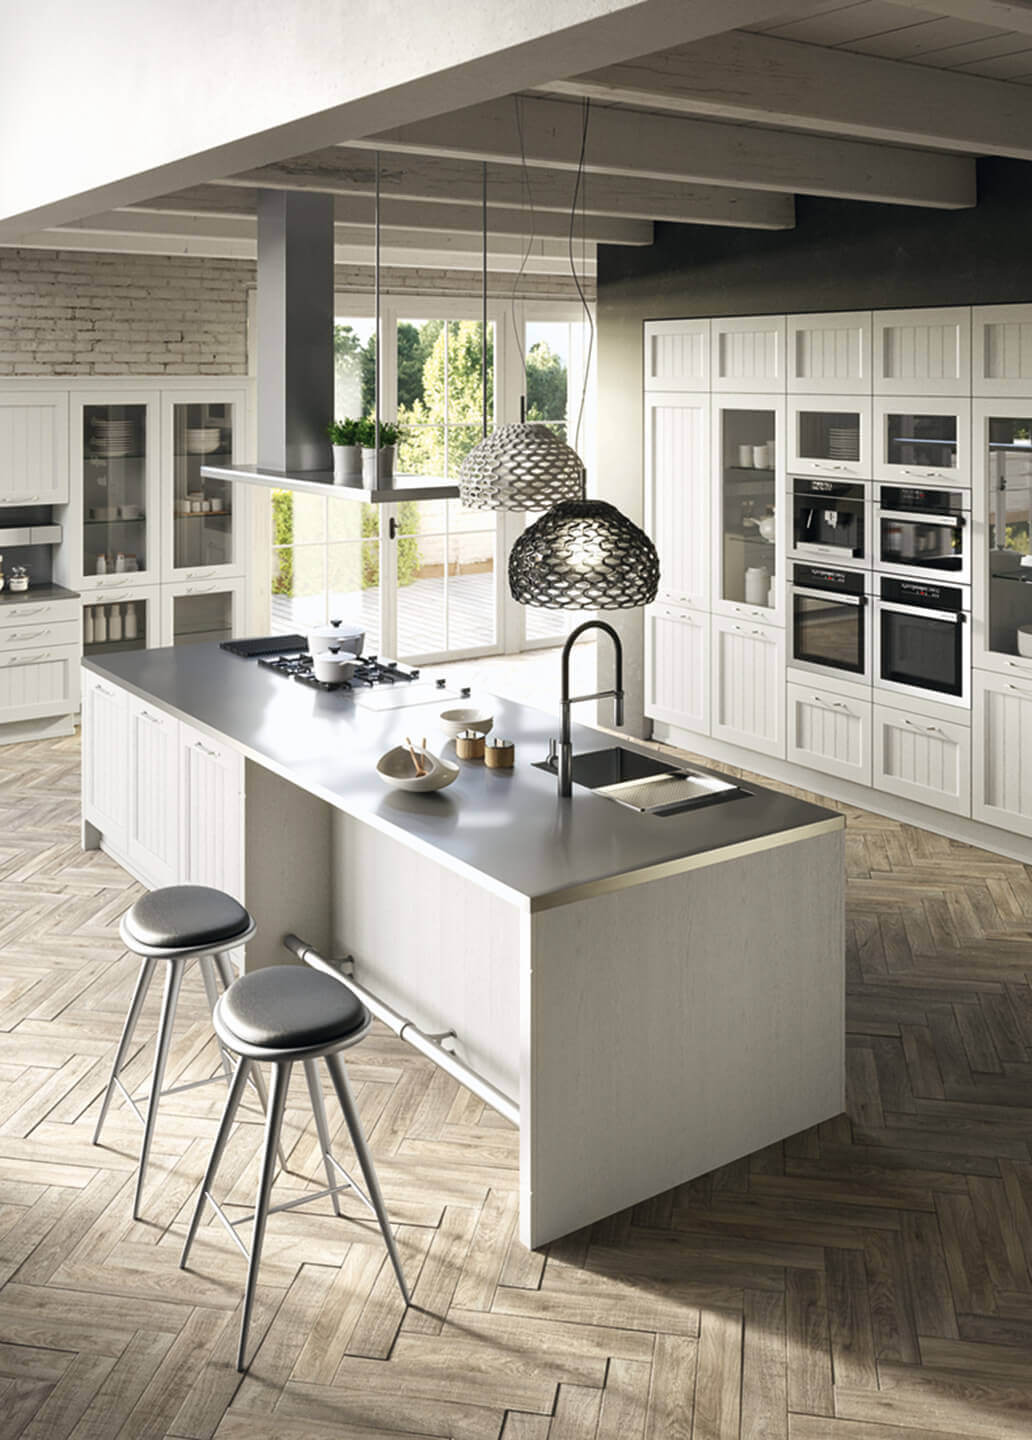 village kitchen design cucina country in frassino bianco anta dogata mobili 3152